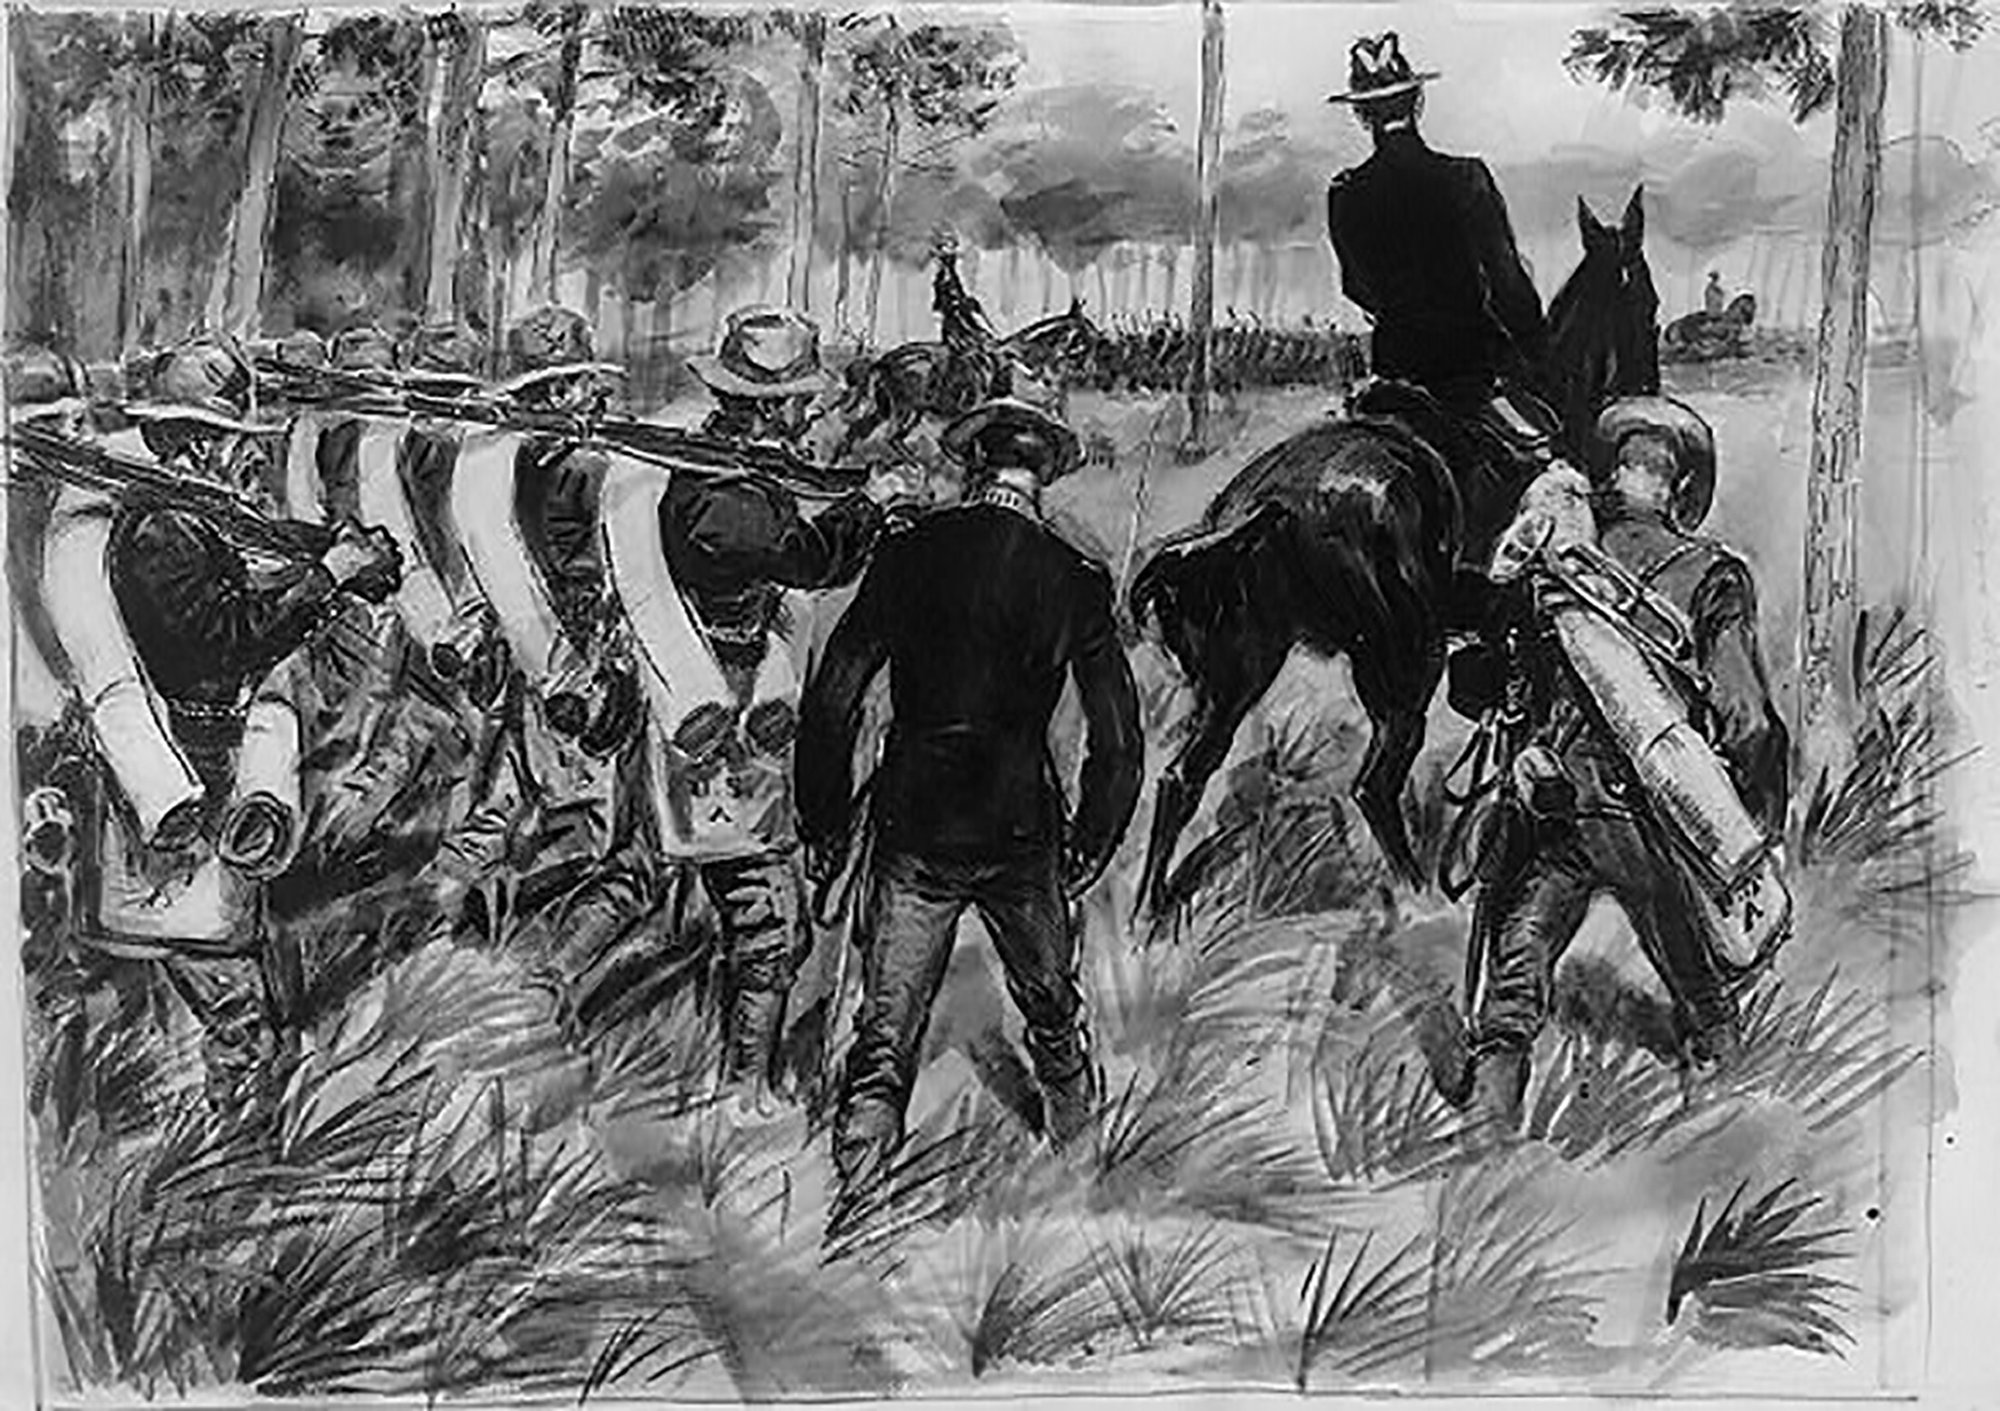 019 Essay Example Macarthur Spanish American War Troops On The March Contributor Glackens William J Loc 2000x1411 Q85 Crop Subsampling 2 Upscale Awful Causes And Effects Topics Questions Full